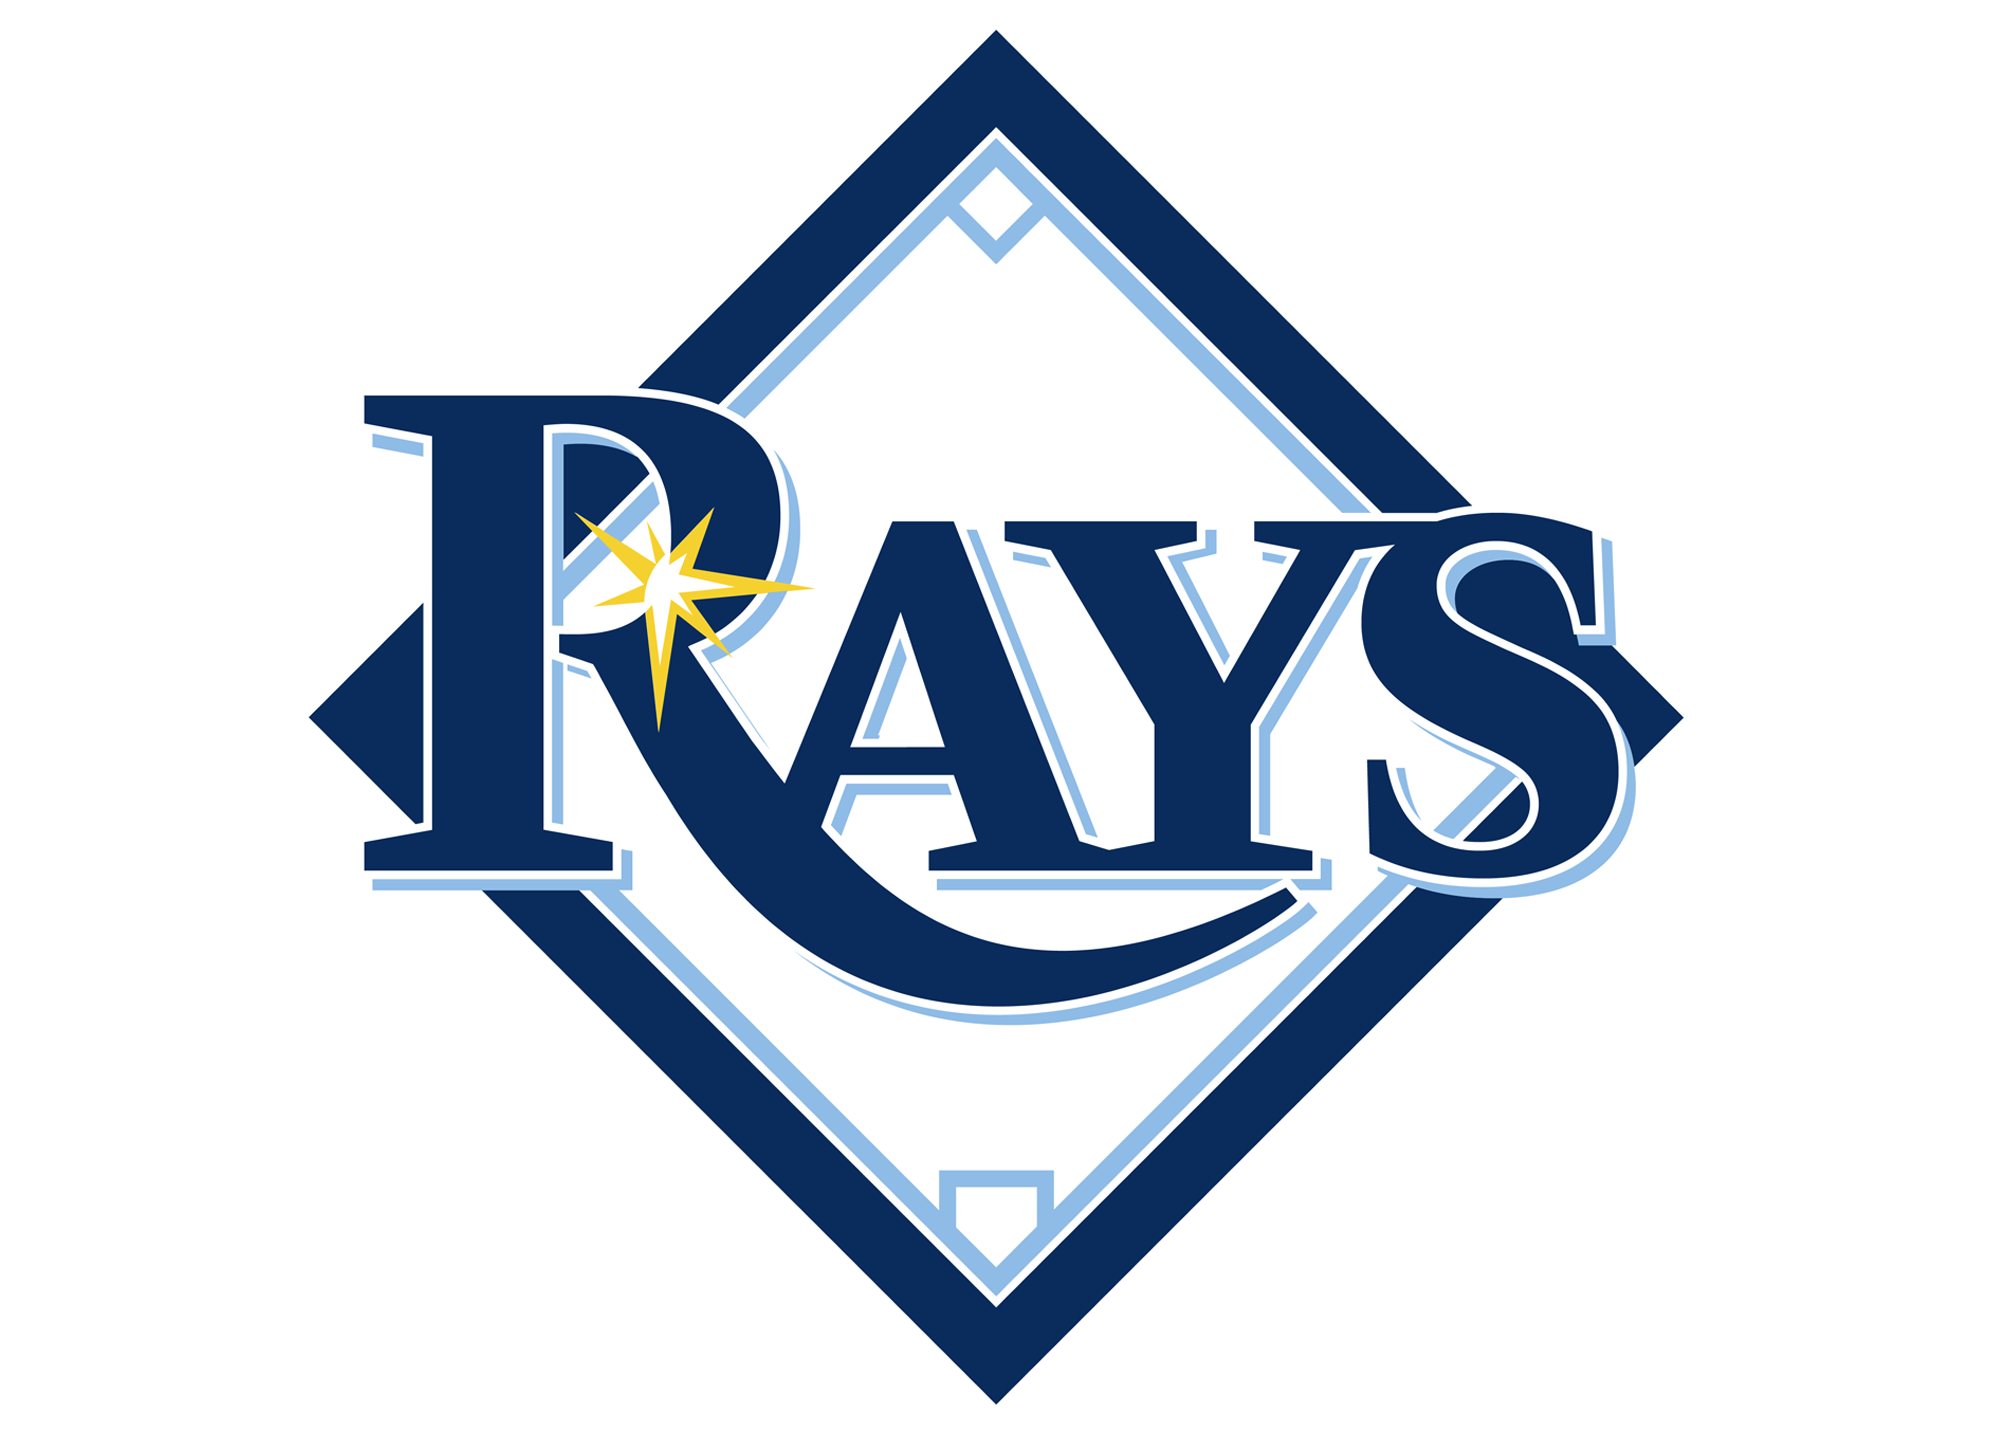 Tampa Bay Rays - Free Sports Logo Vector Downloads